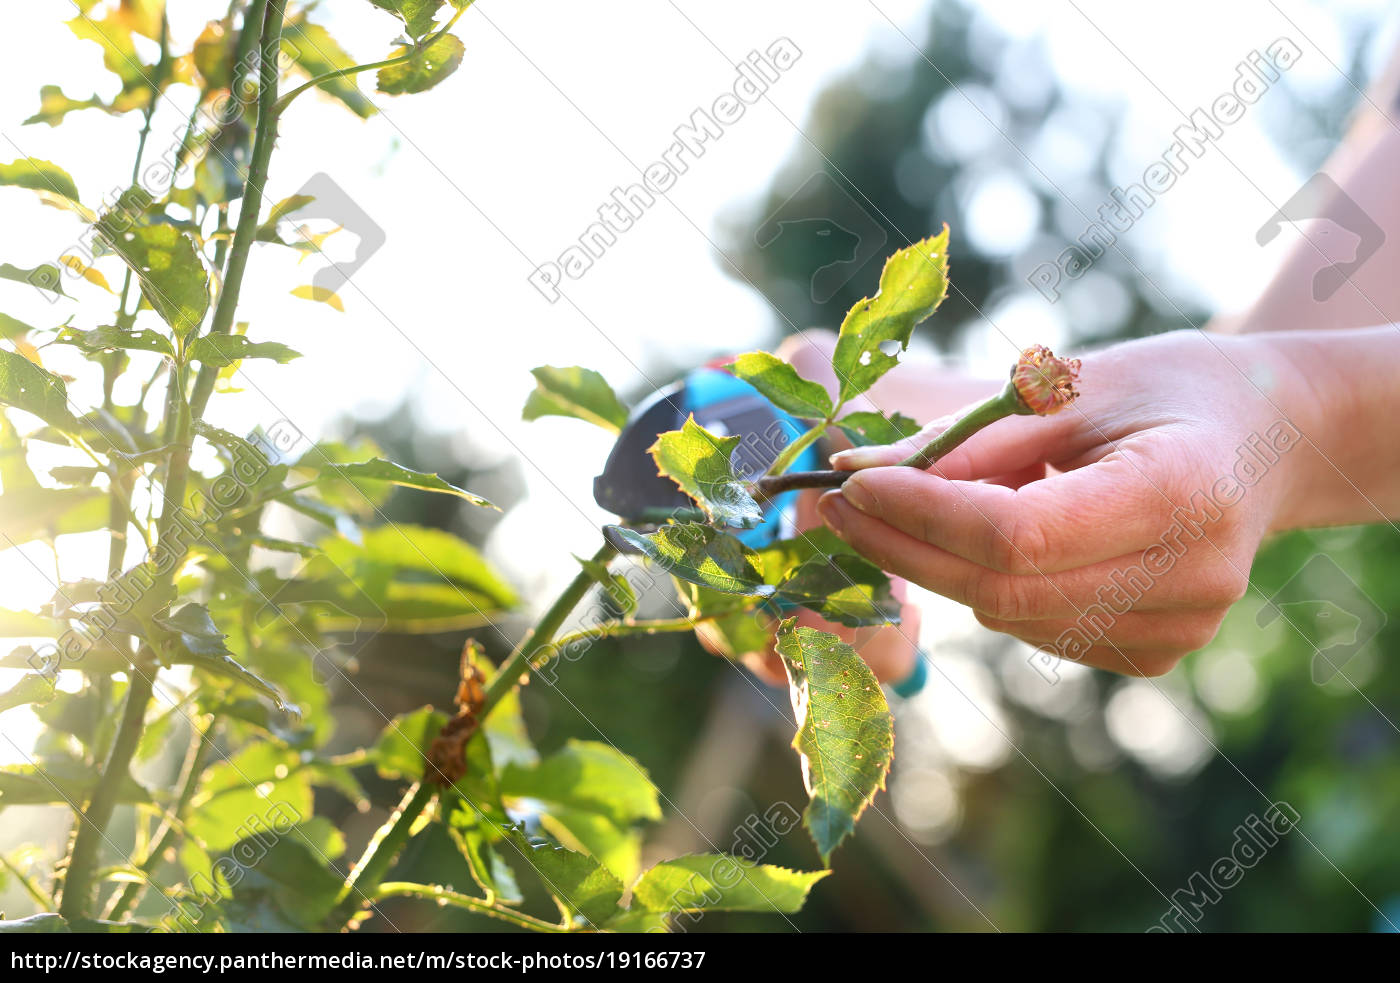 cutting, the, rose, canes., care, work - 19166737